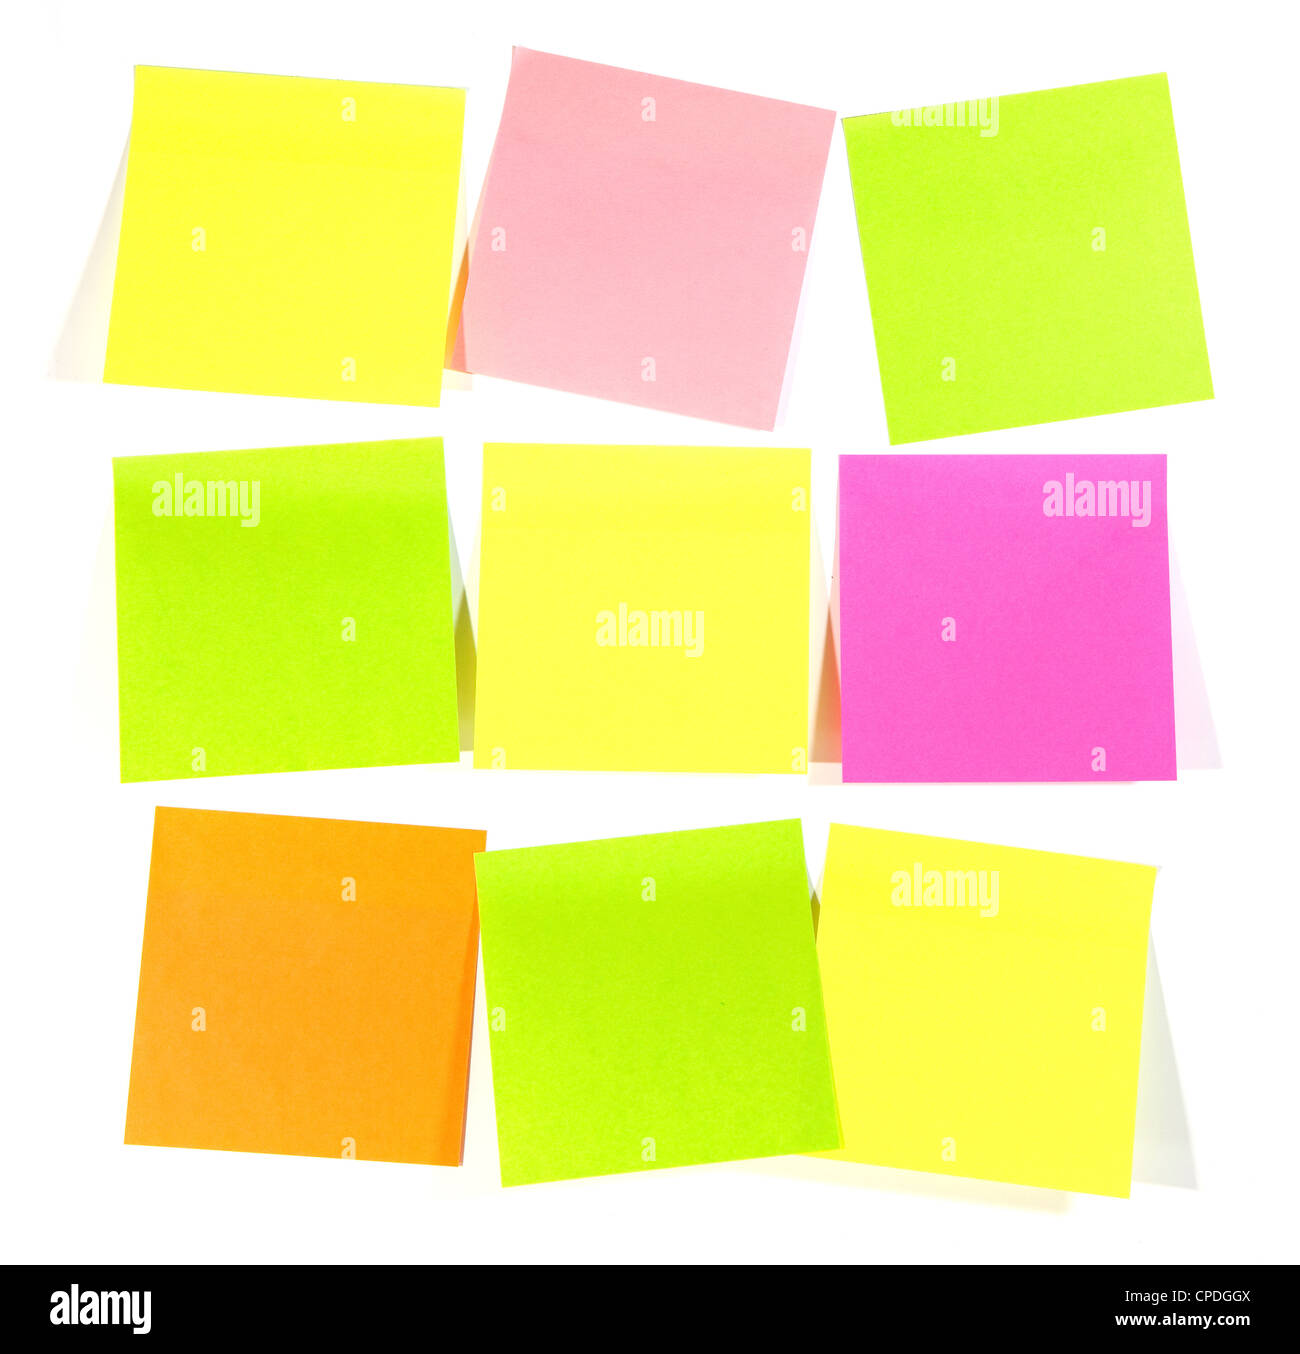 Postit for reminder note on the white background - Stock Image